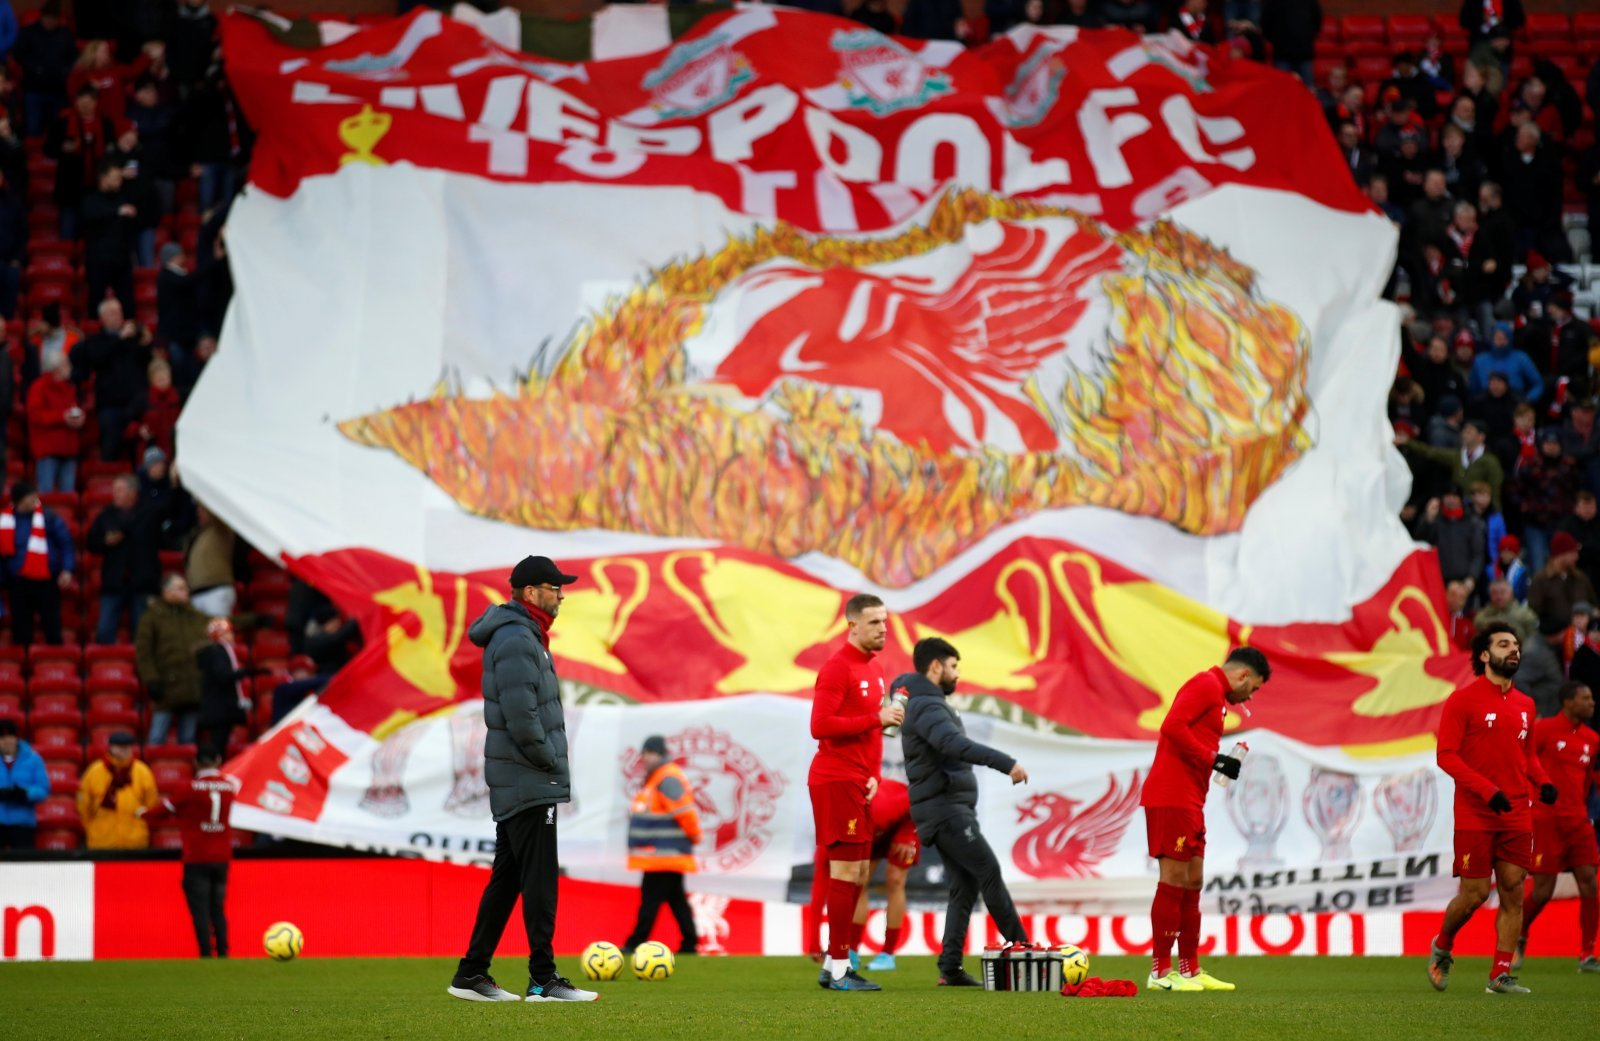 Liverpool: Fans want to face Real Madrid in the next round of the Champions League